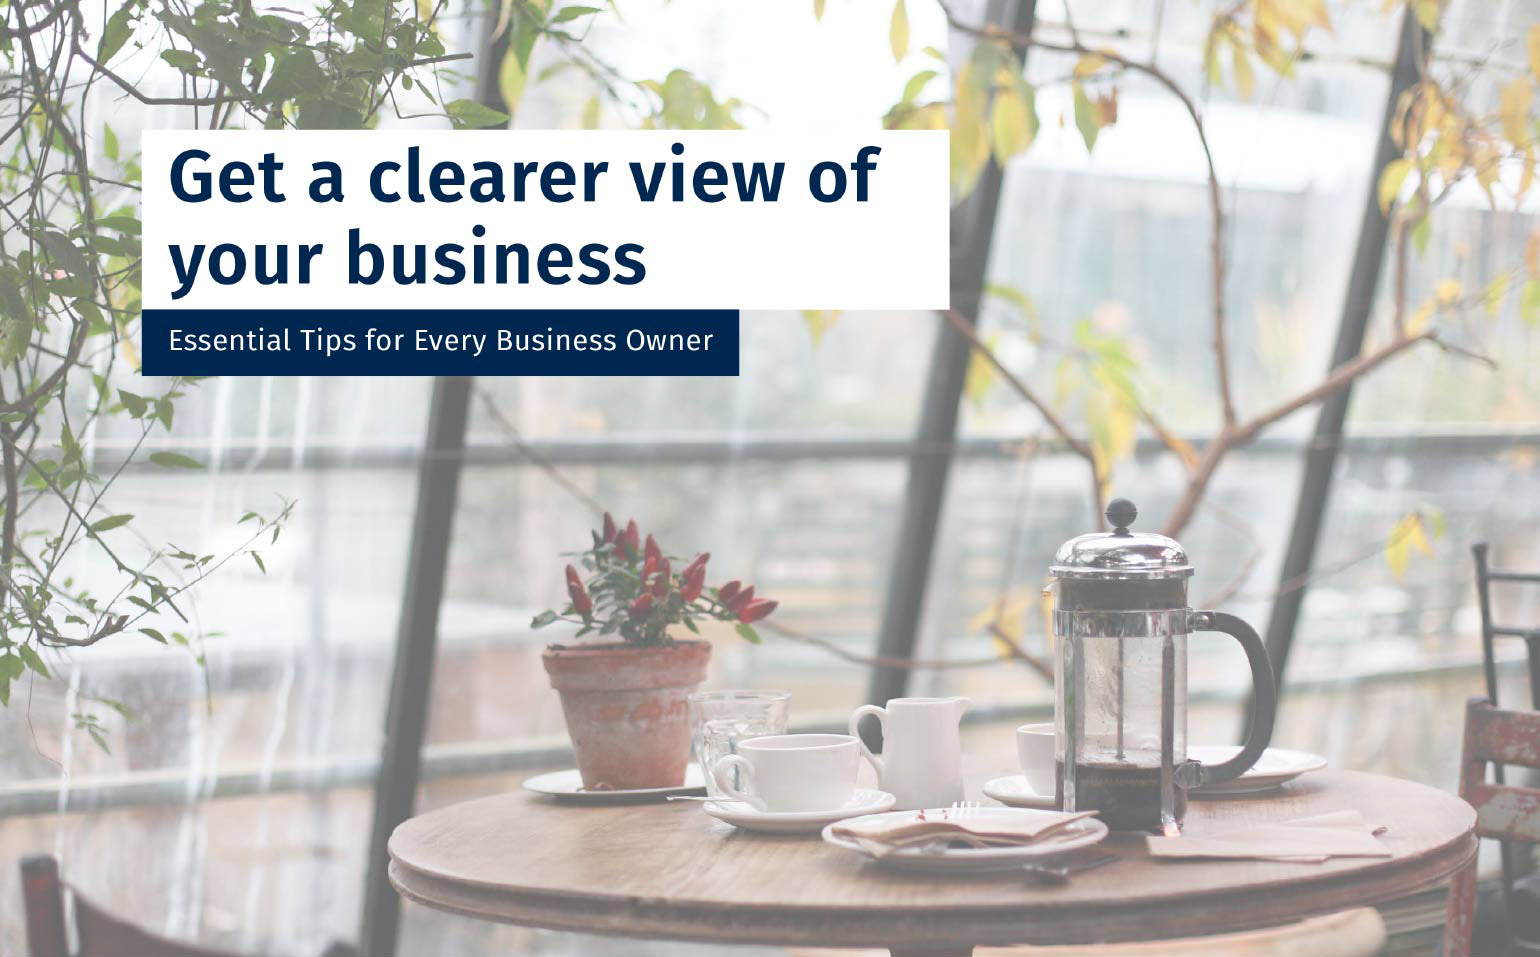 Get a Clearer View of Your Business - Essential Tips for Every Business Owner